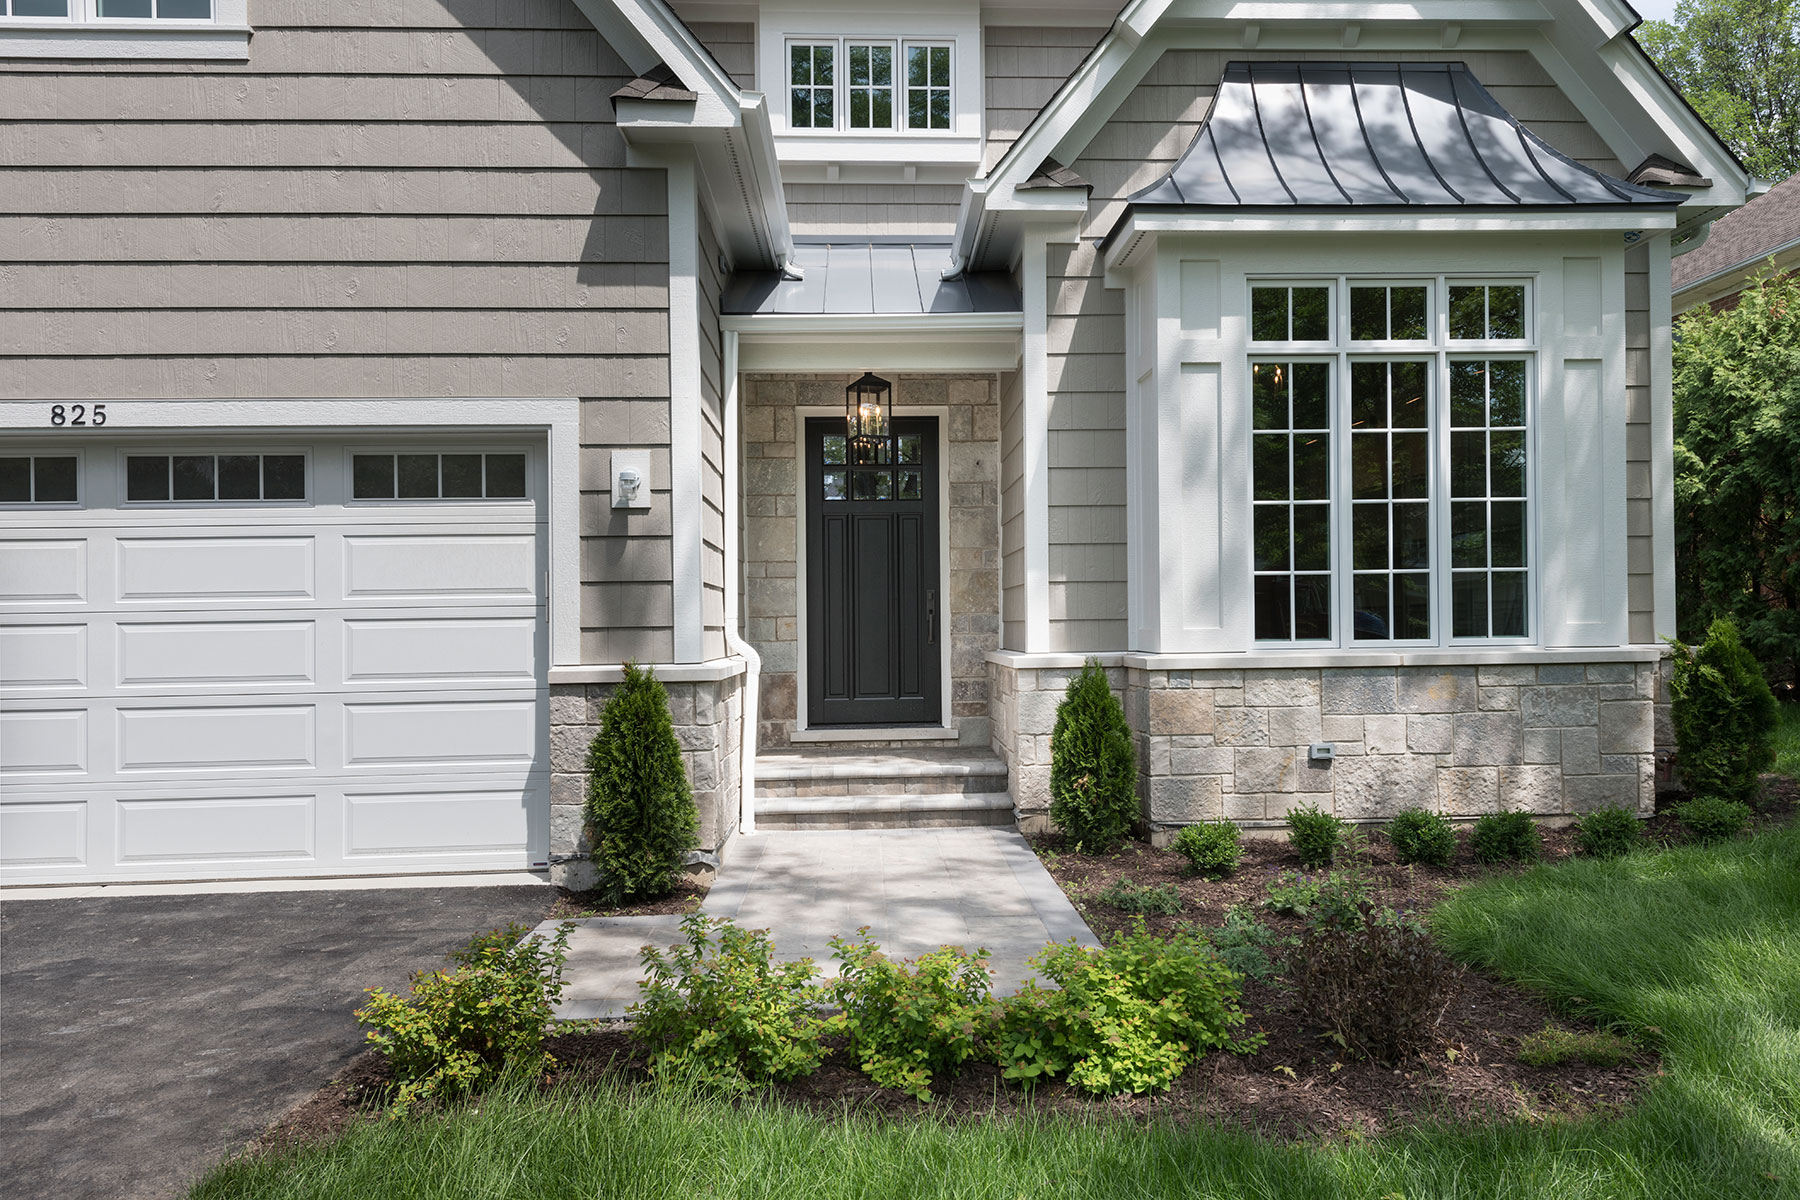 Wood Front Entry Doors in-Stock | transitional single door from mahogany wood in espresso finish  DB-311PW 2SL - Glenview Doors - Custom Doors in Chicago